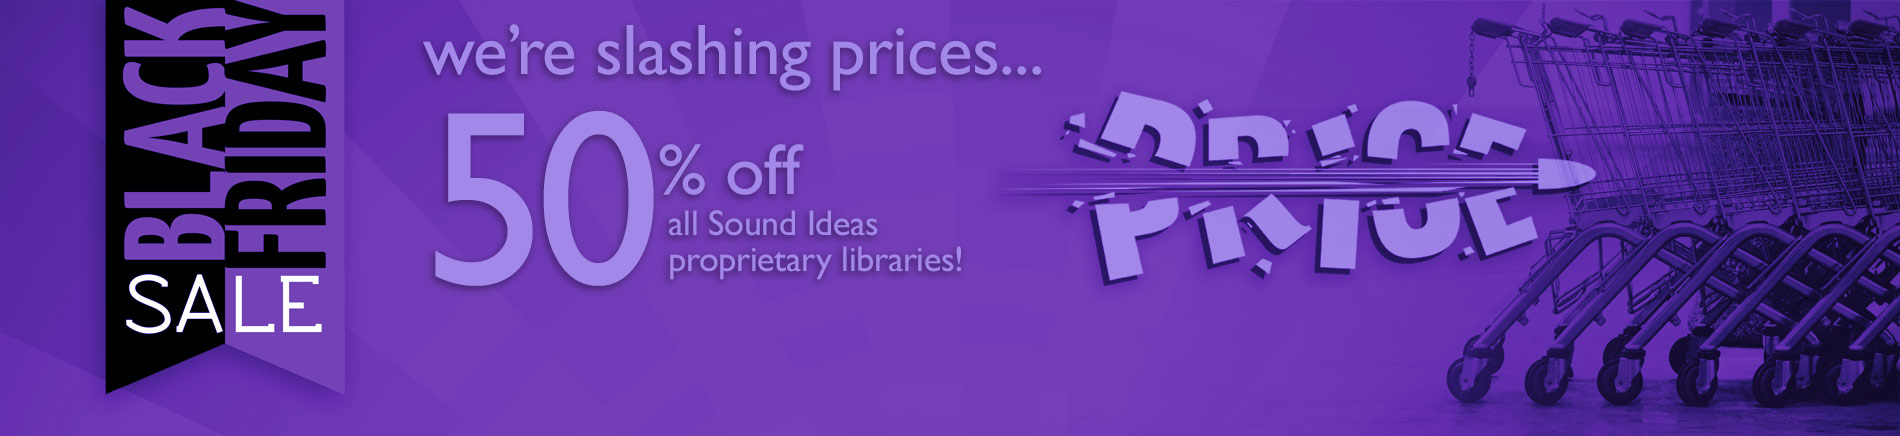 Black Friday Sale - Get 50% off all Sound Ideas Proprietary Libraries! Our Biggest Sale of the Year! Don't miss out!